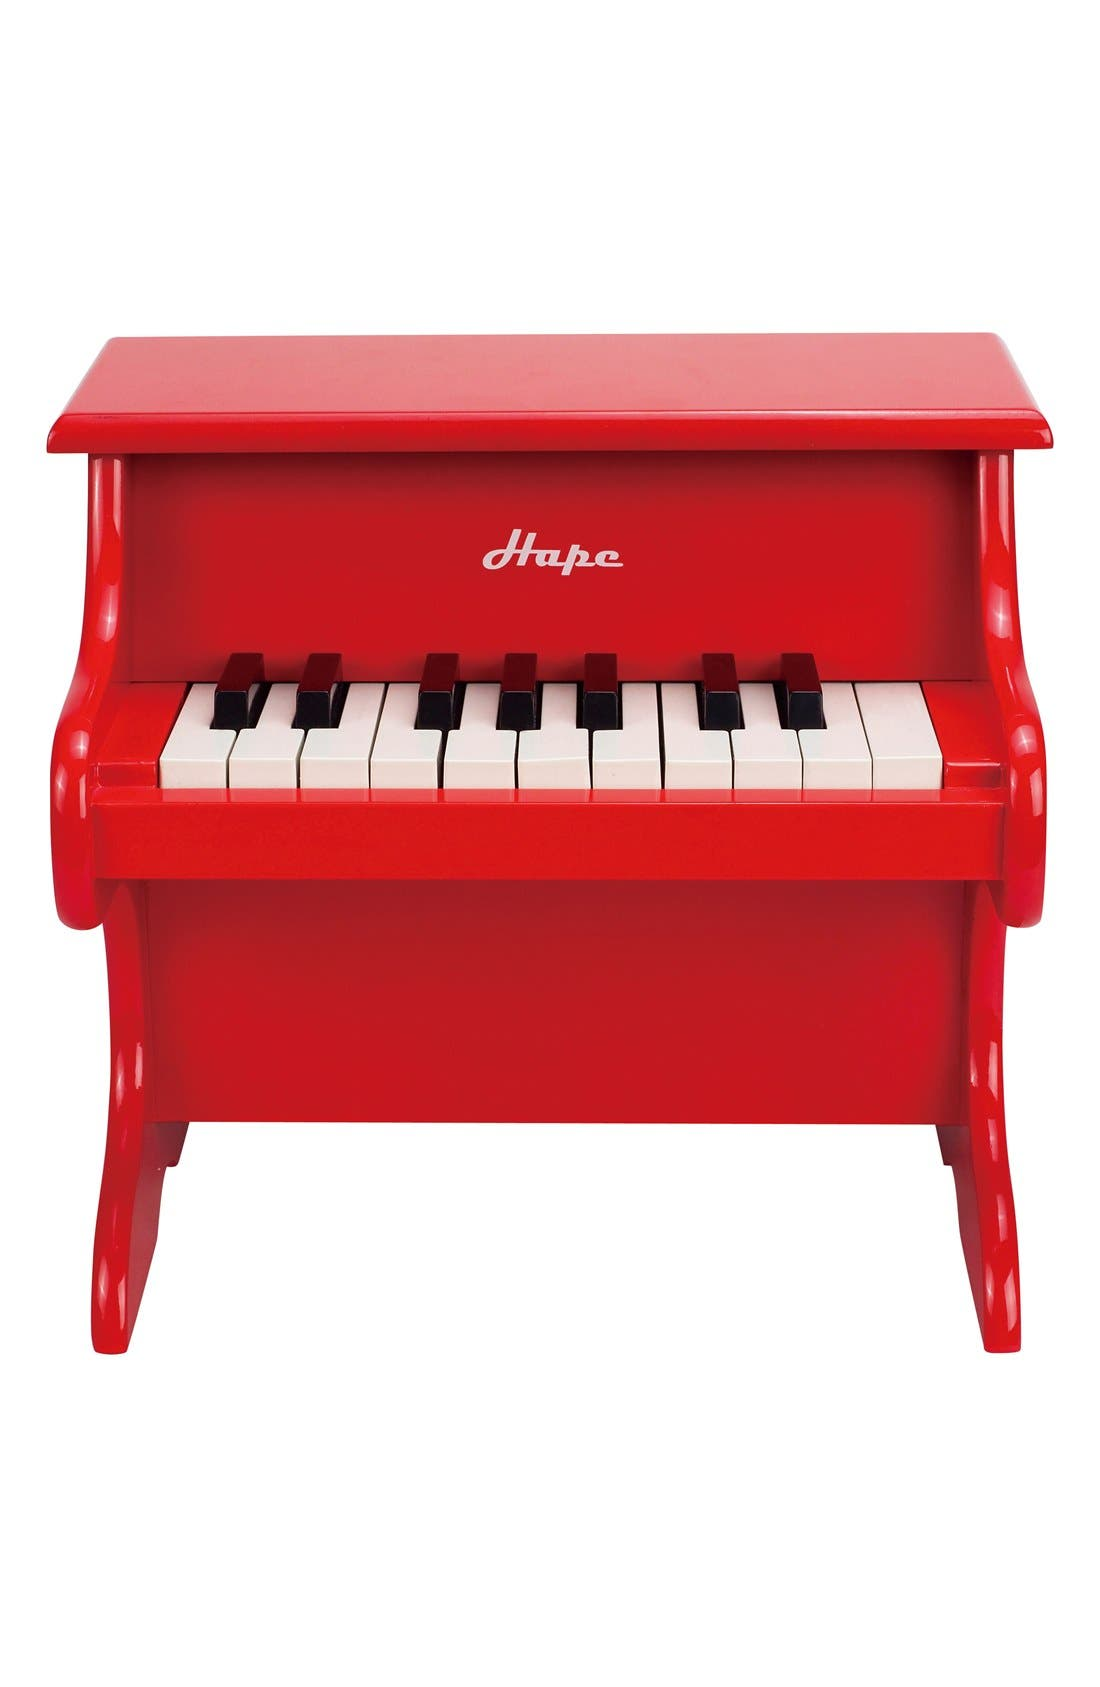 Hape 'Playful' Toy Piano